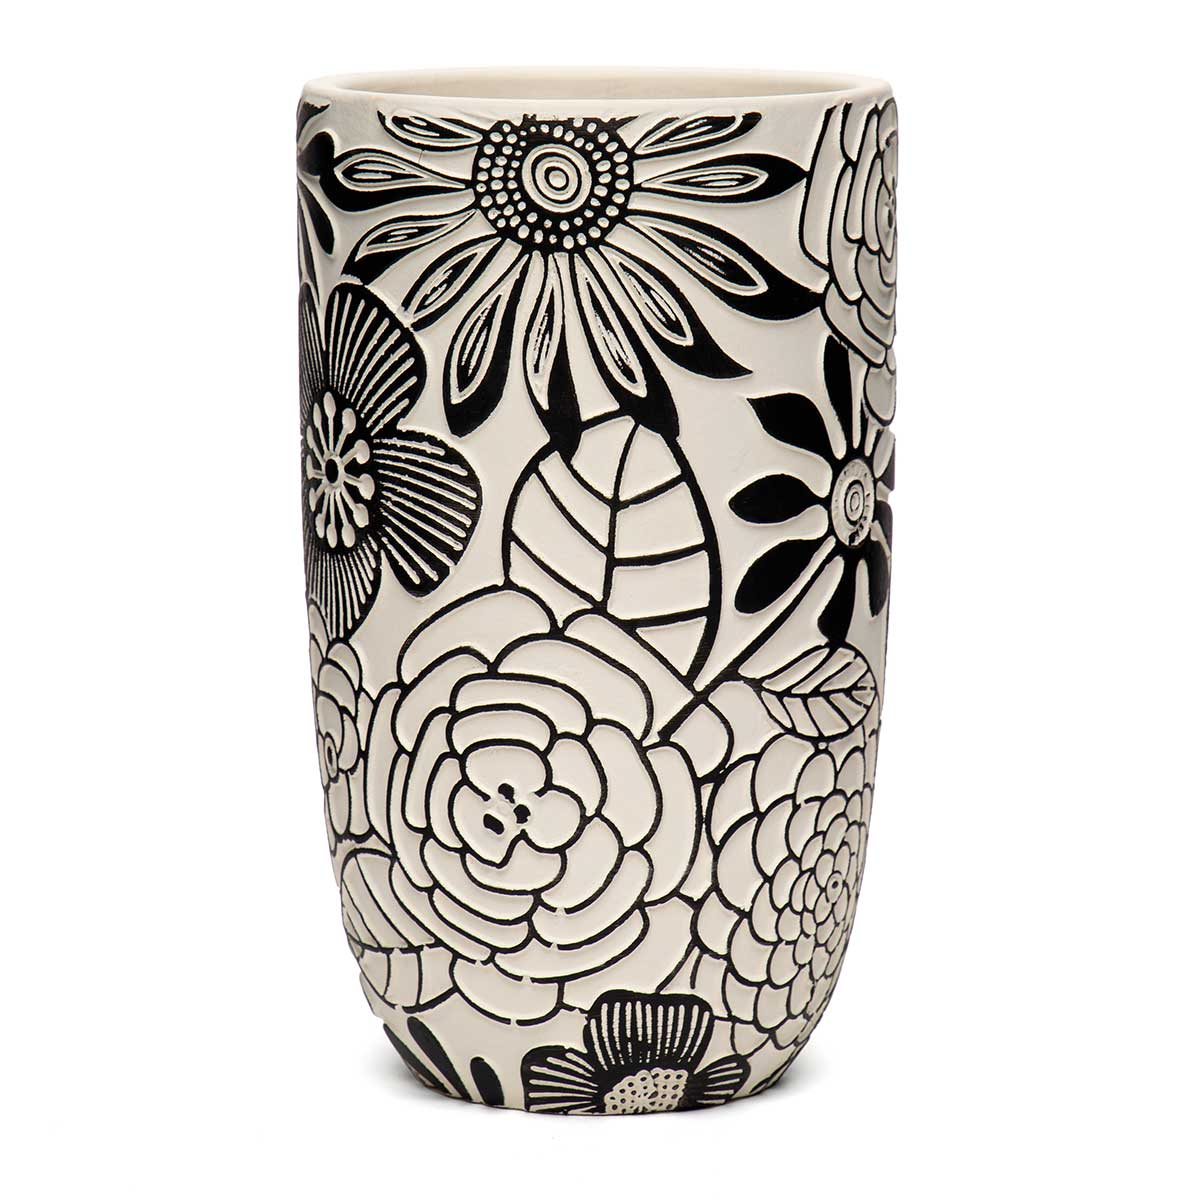 "FLORAL MOTIF TERRA COTTA POT BLACK/WHITE TALL 4.75""x8.25"""